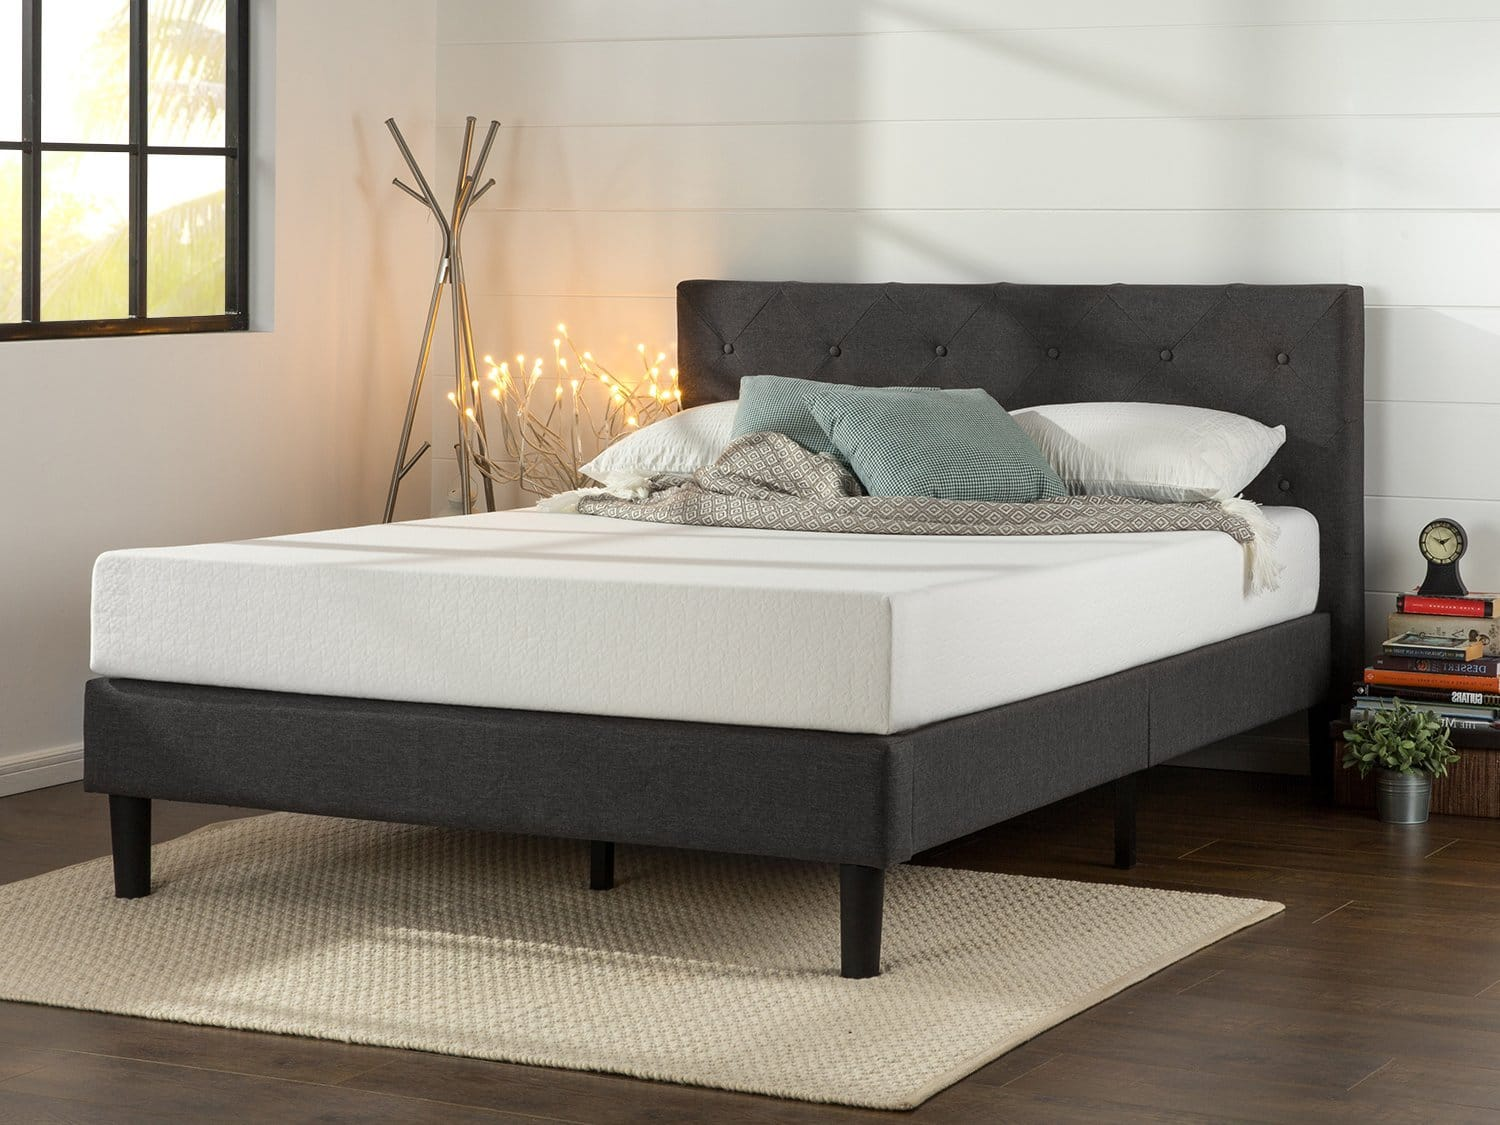 Good Zinus Upholstered Diamond Stitched Platform Bed Queen Slickdeals net